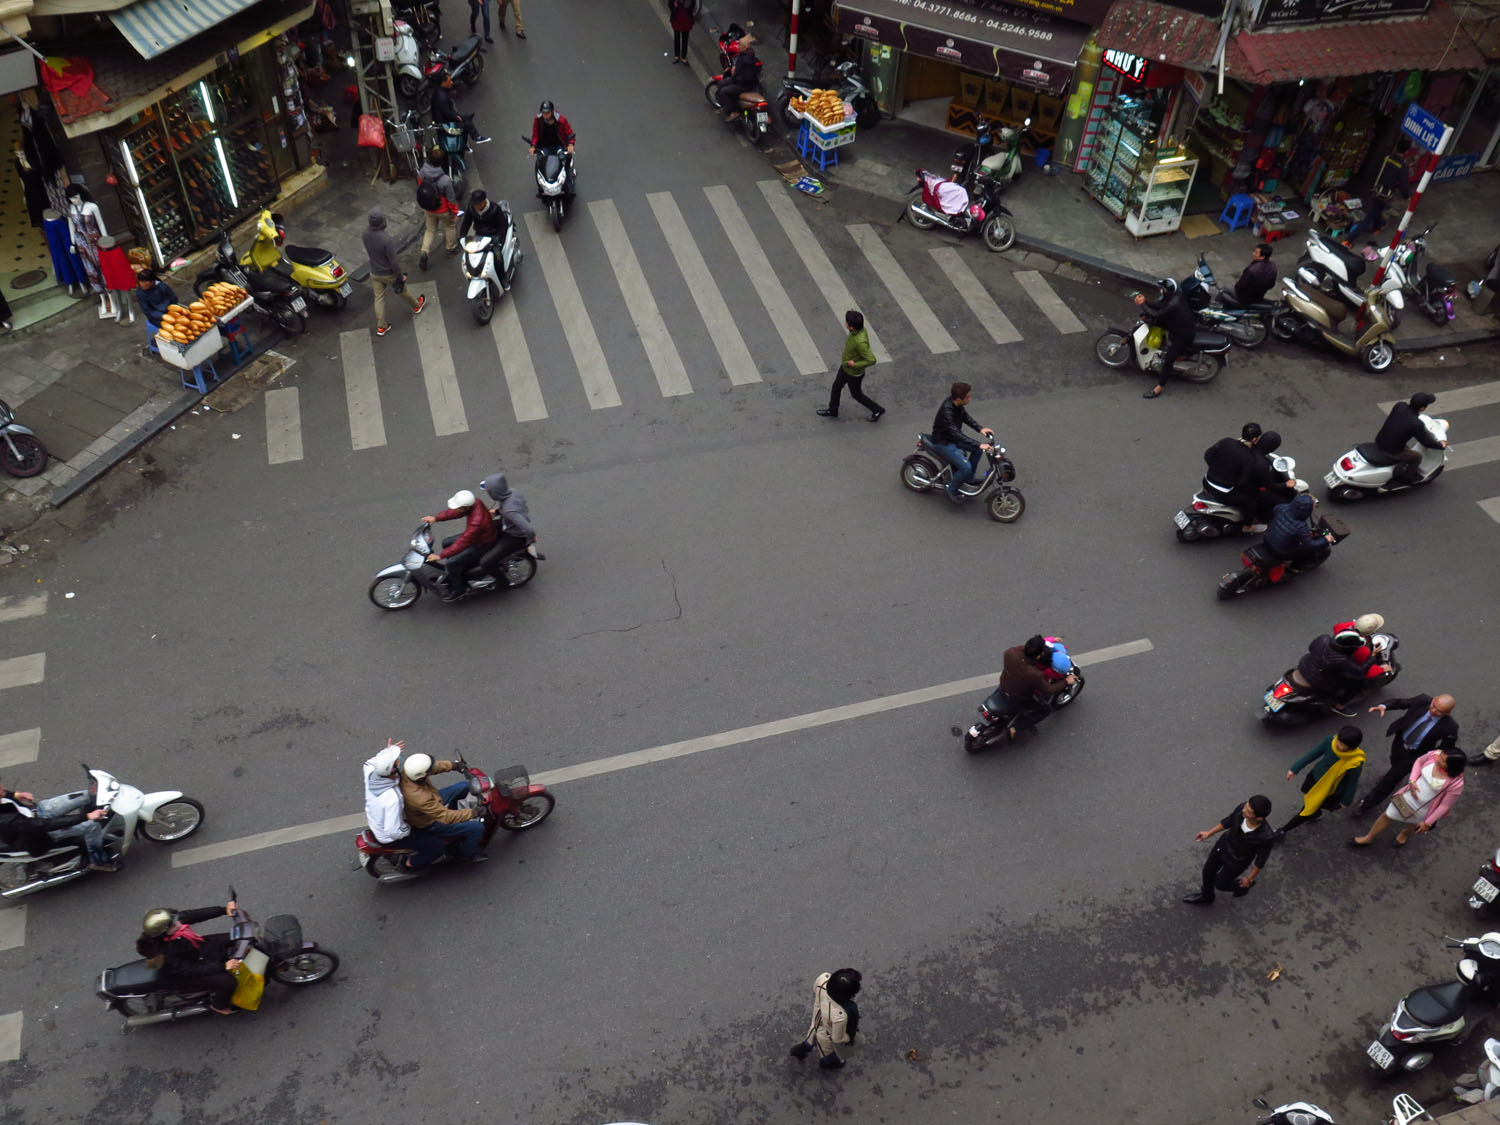 Vietnam-Hanoi-Street-Scenes-Looking-Down